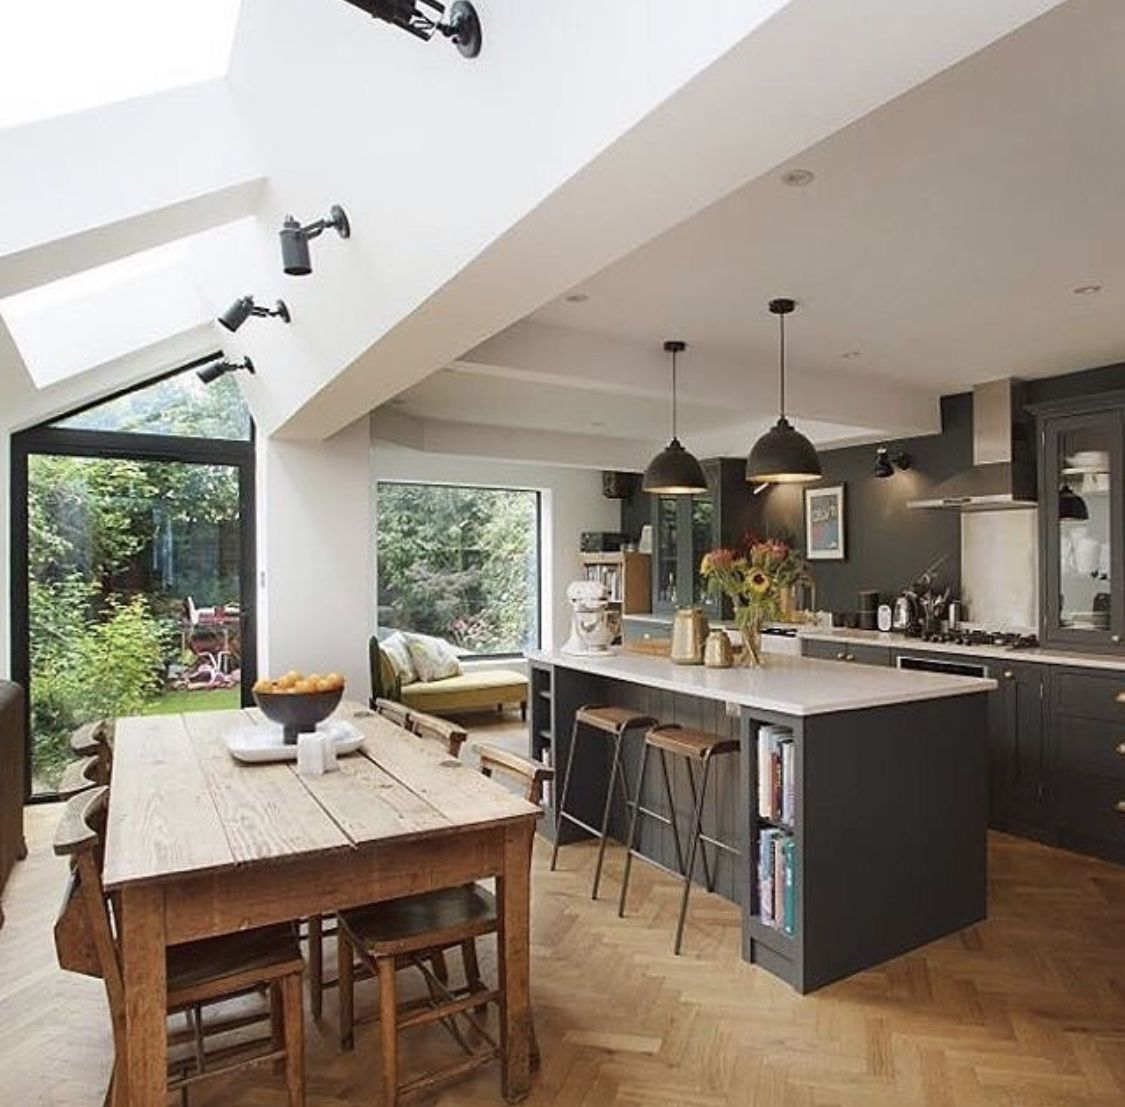 Pin By Sabi On Home Kitchen Dining Living Open Plan Kitchen Living Room Open Plan Kitchen Dining